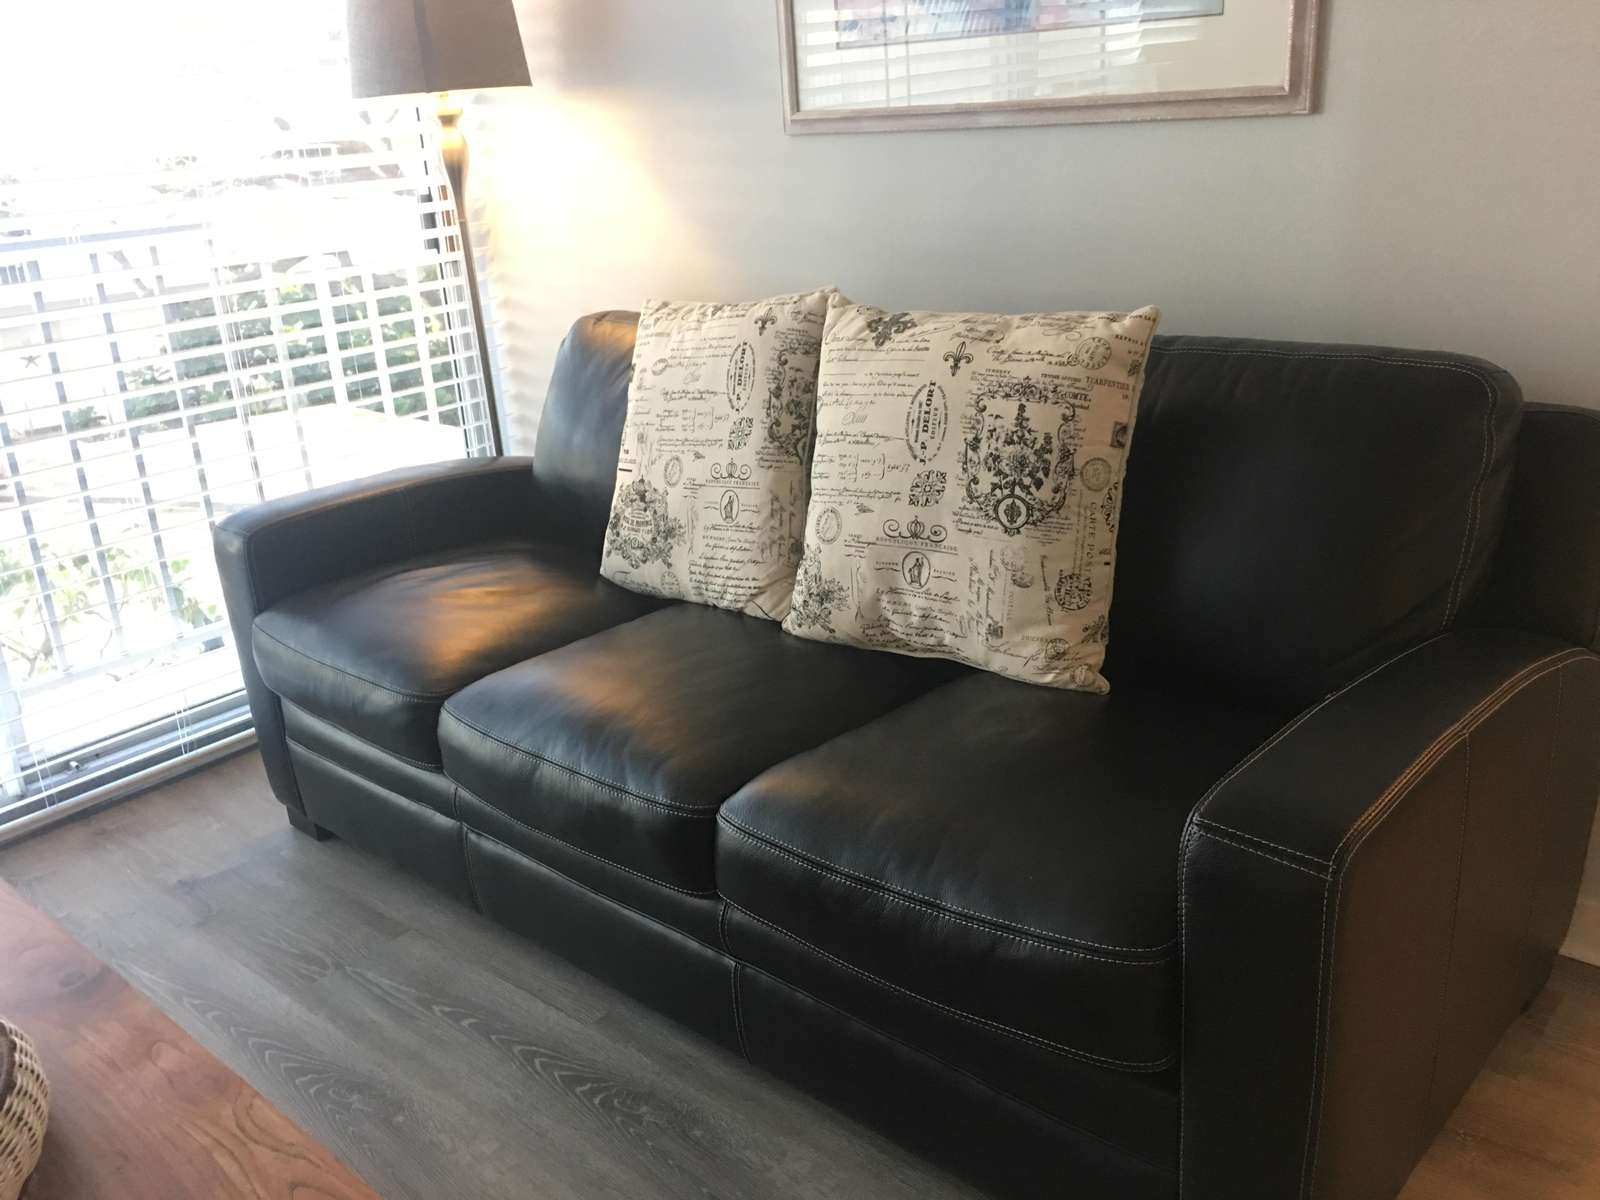 New sofabed installed April 2019